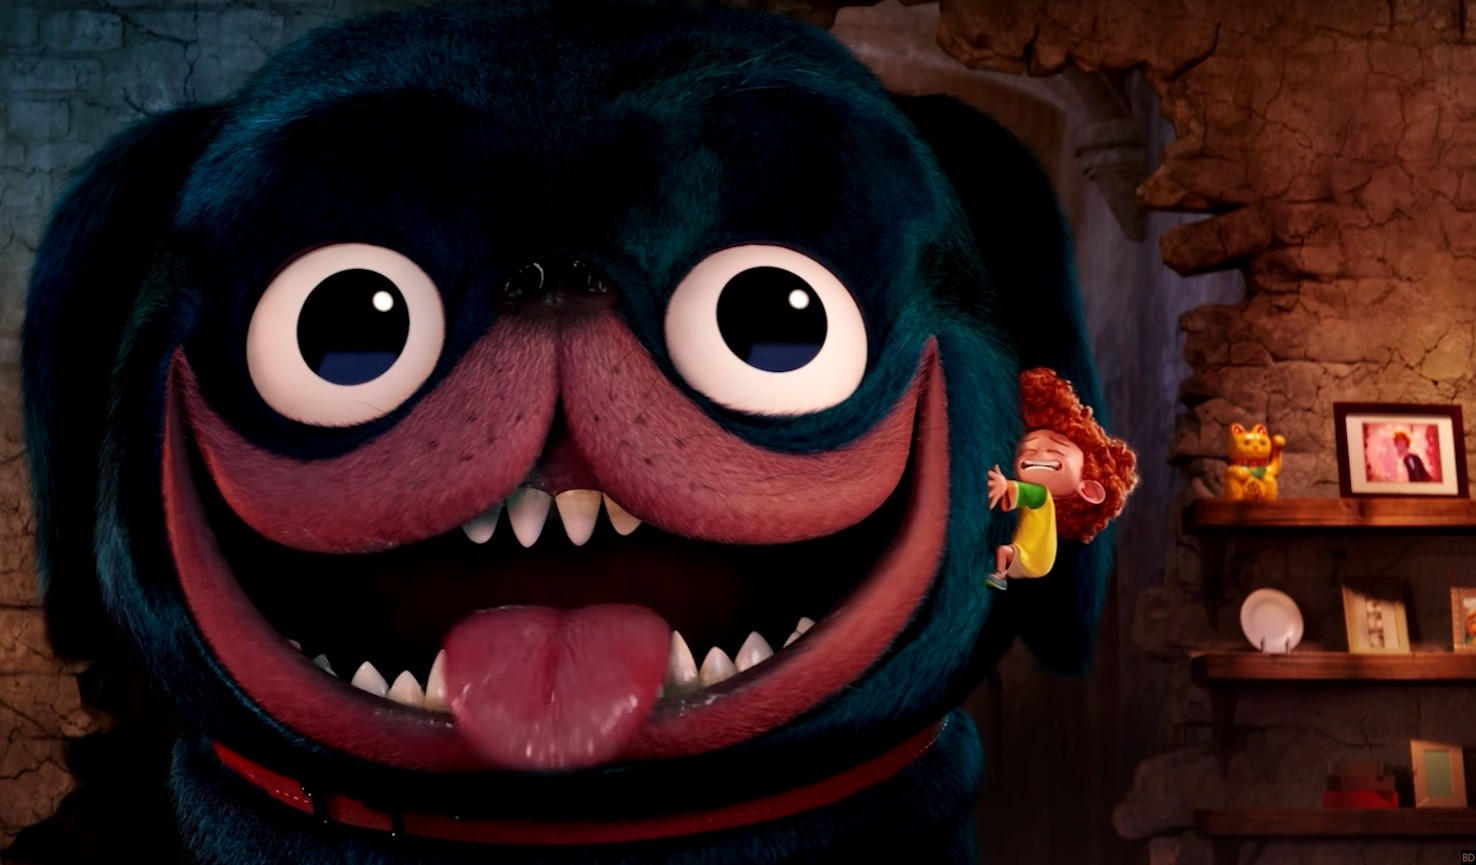 First Look at New 'Hotel Transylvania' Short Film 'Puppy!' - Bloody